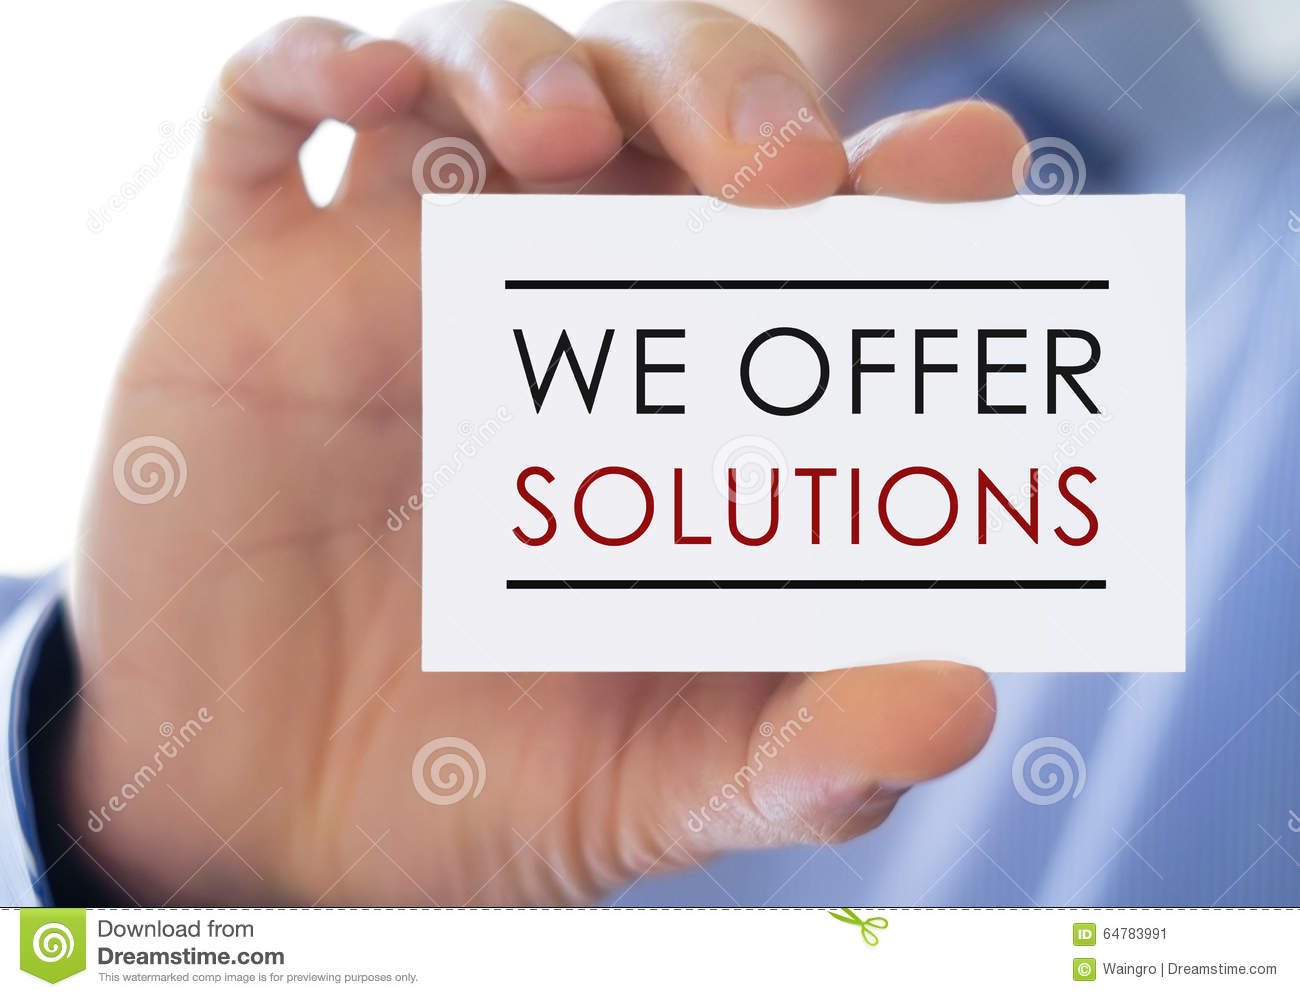 We offer solutions stock image. Image of concept, business - 64783991